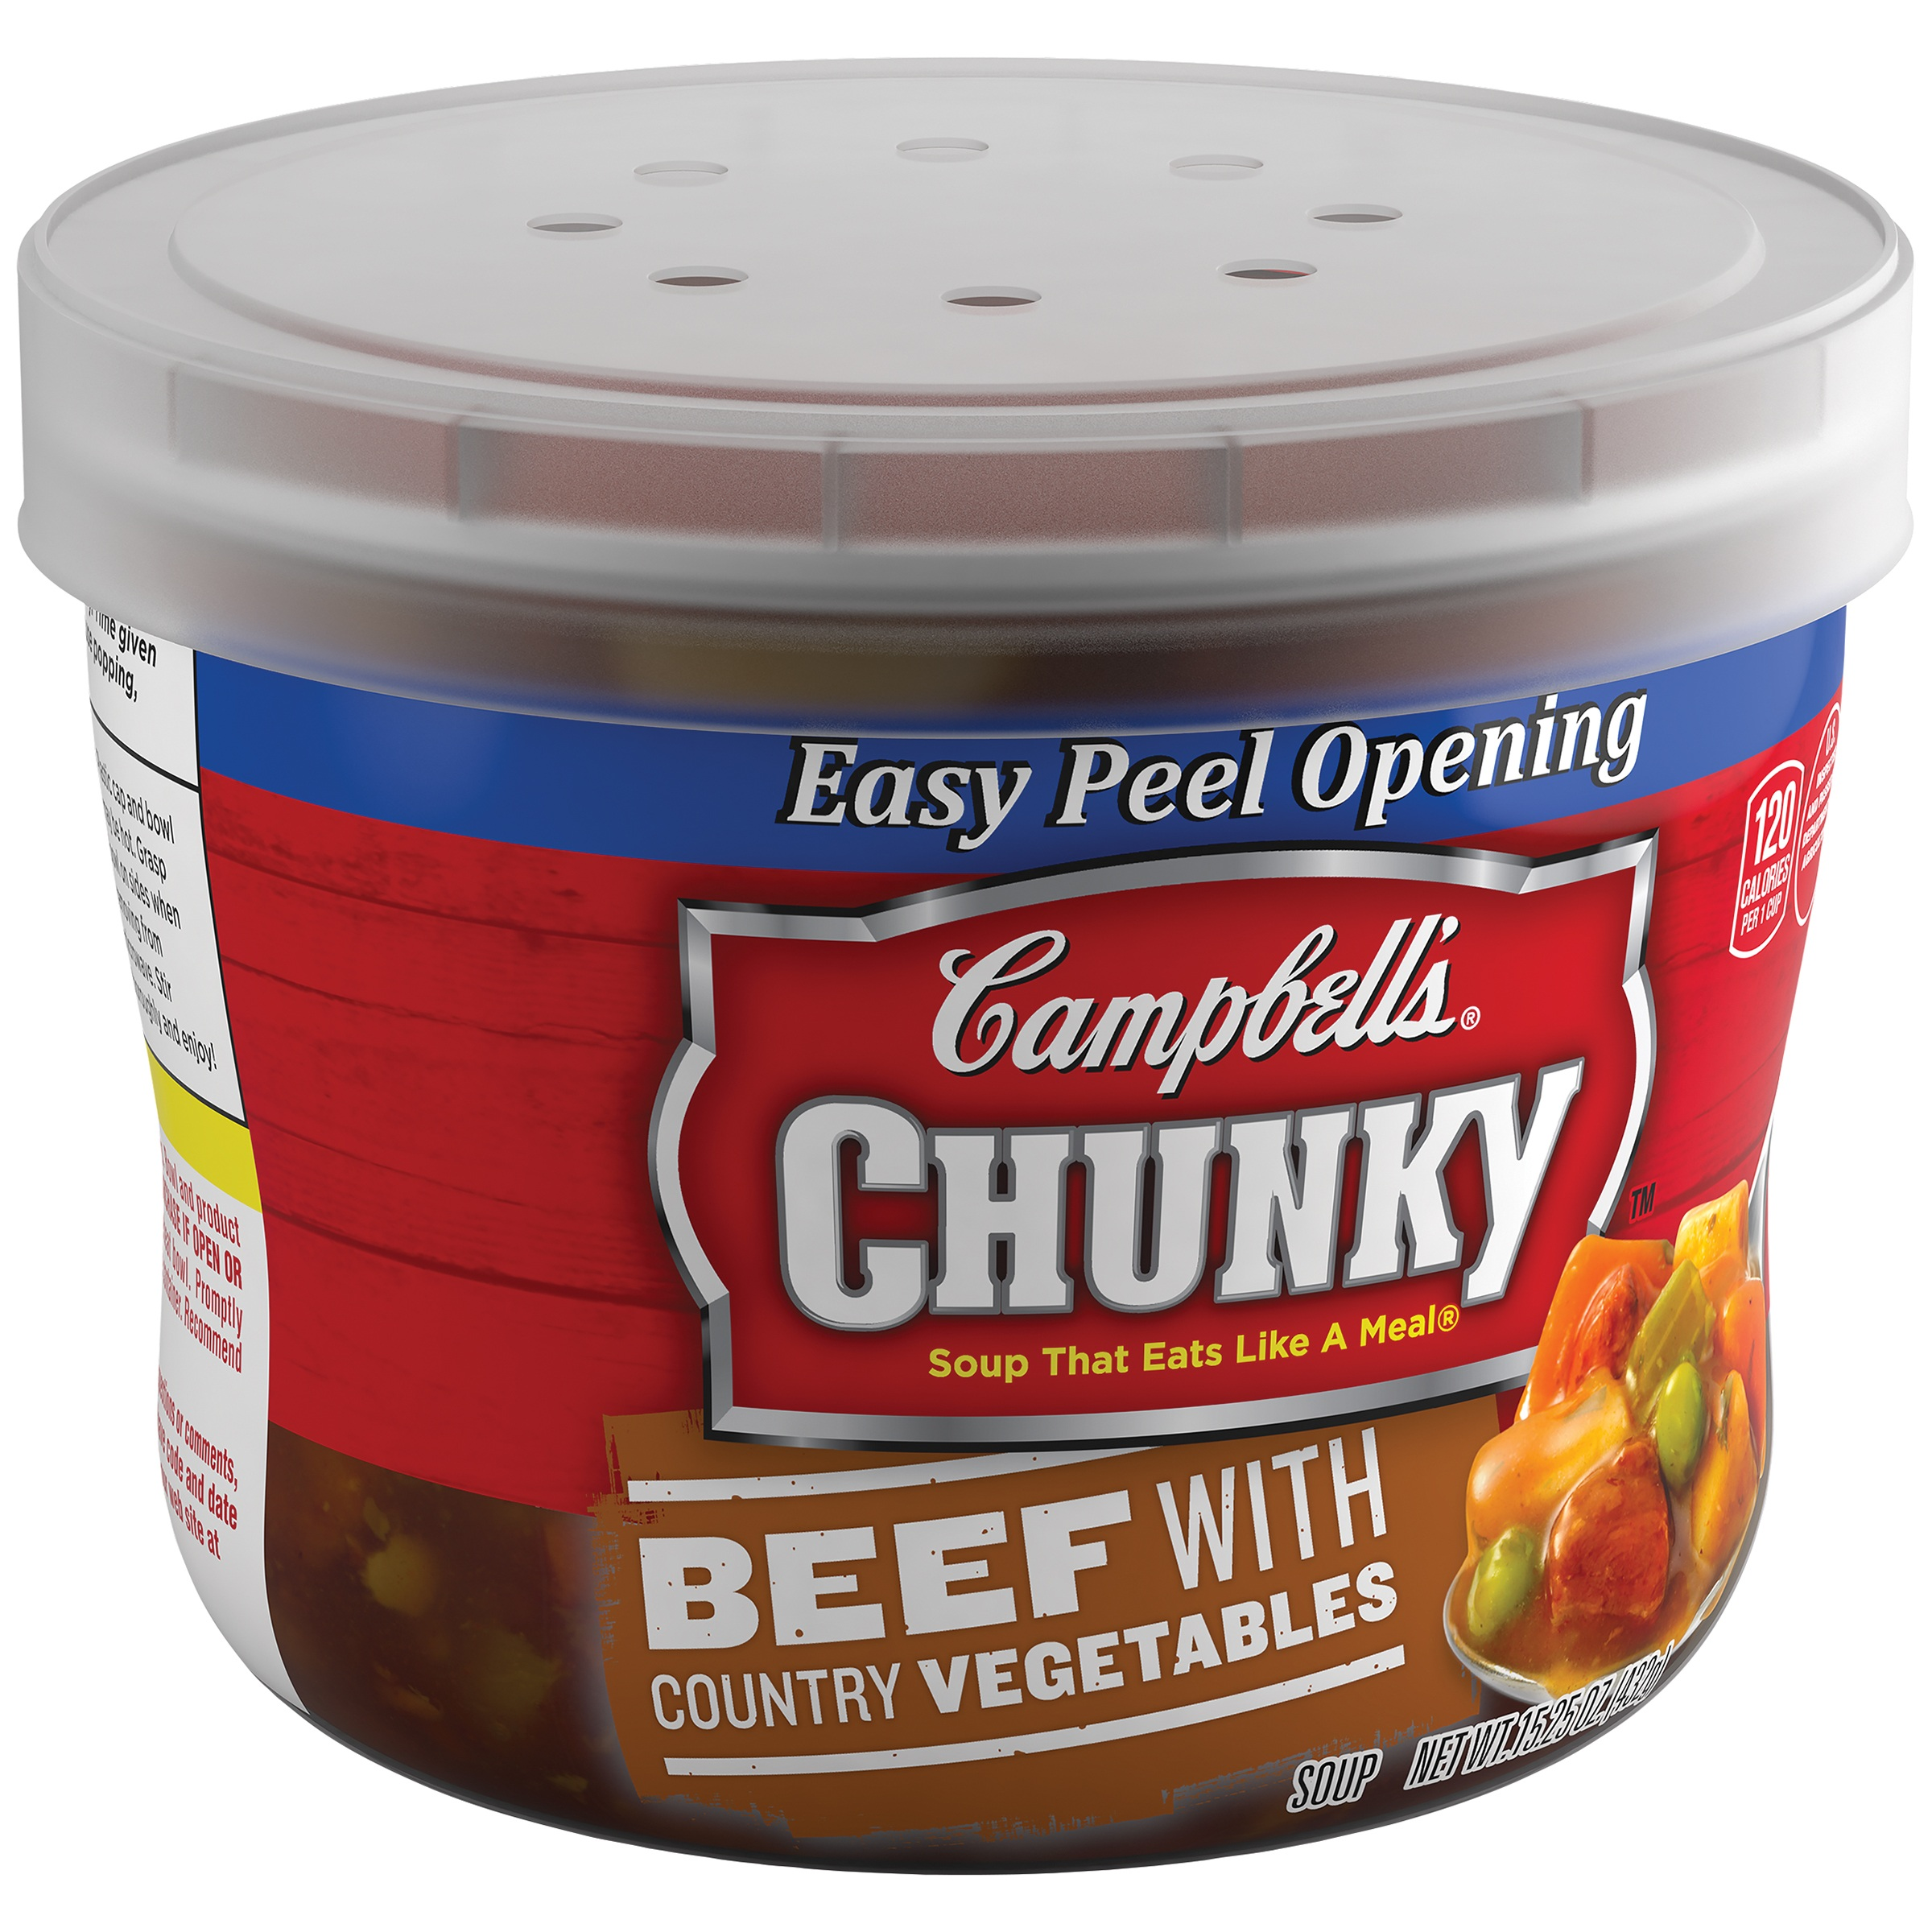 Campbell's® Chunky™ Beef with Country Vegetables Soup Microwavable Bowl, 15.25 oz.